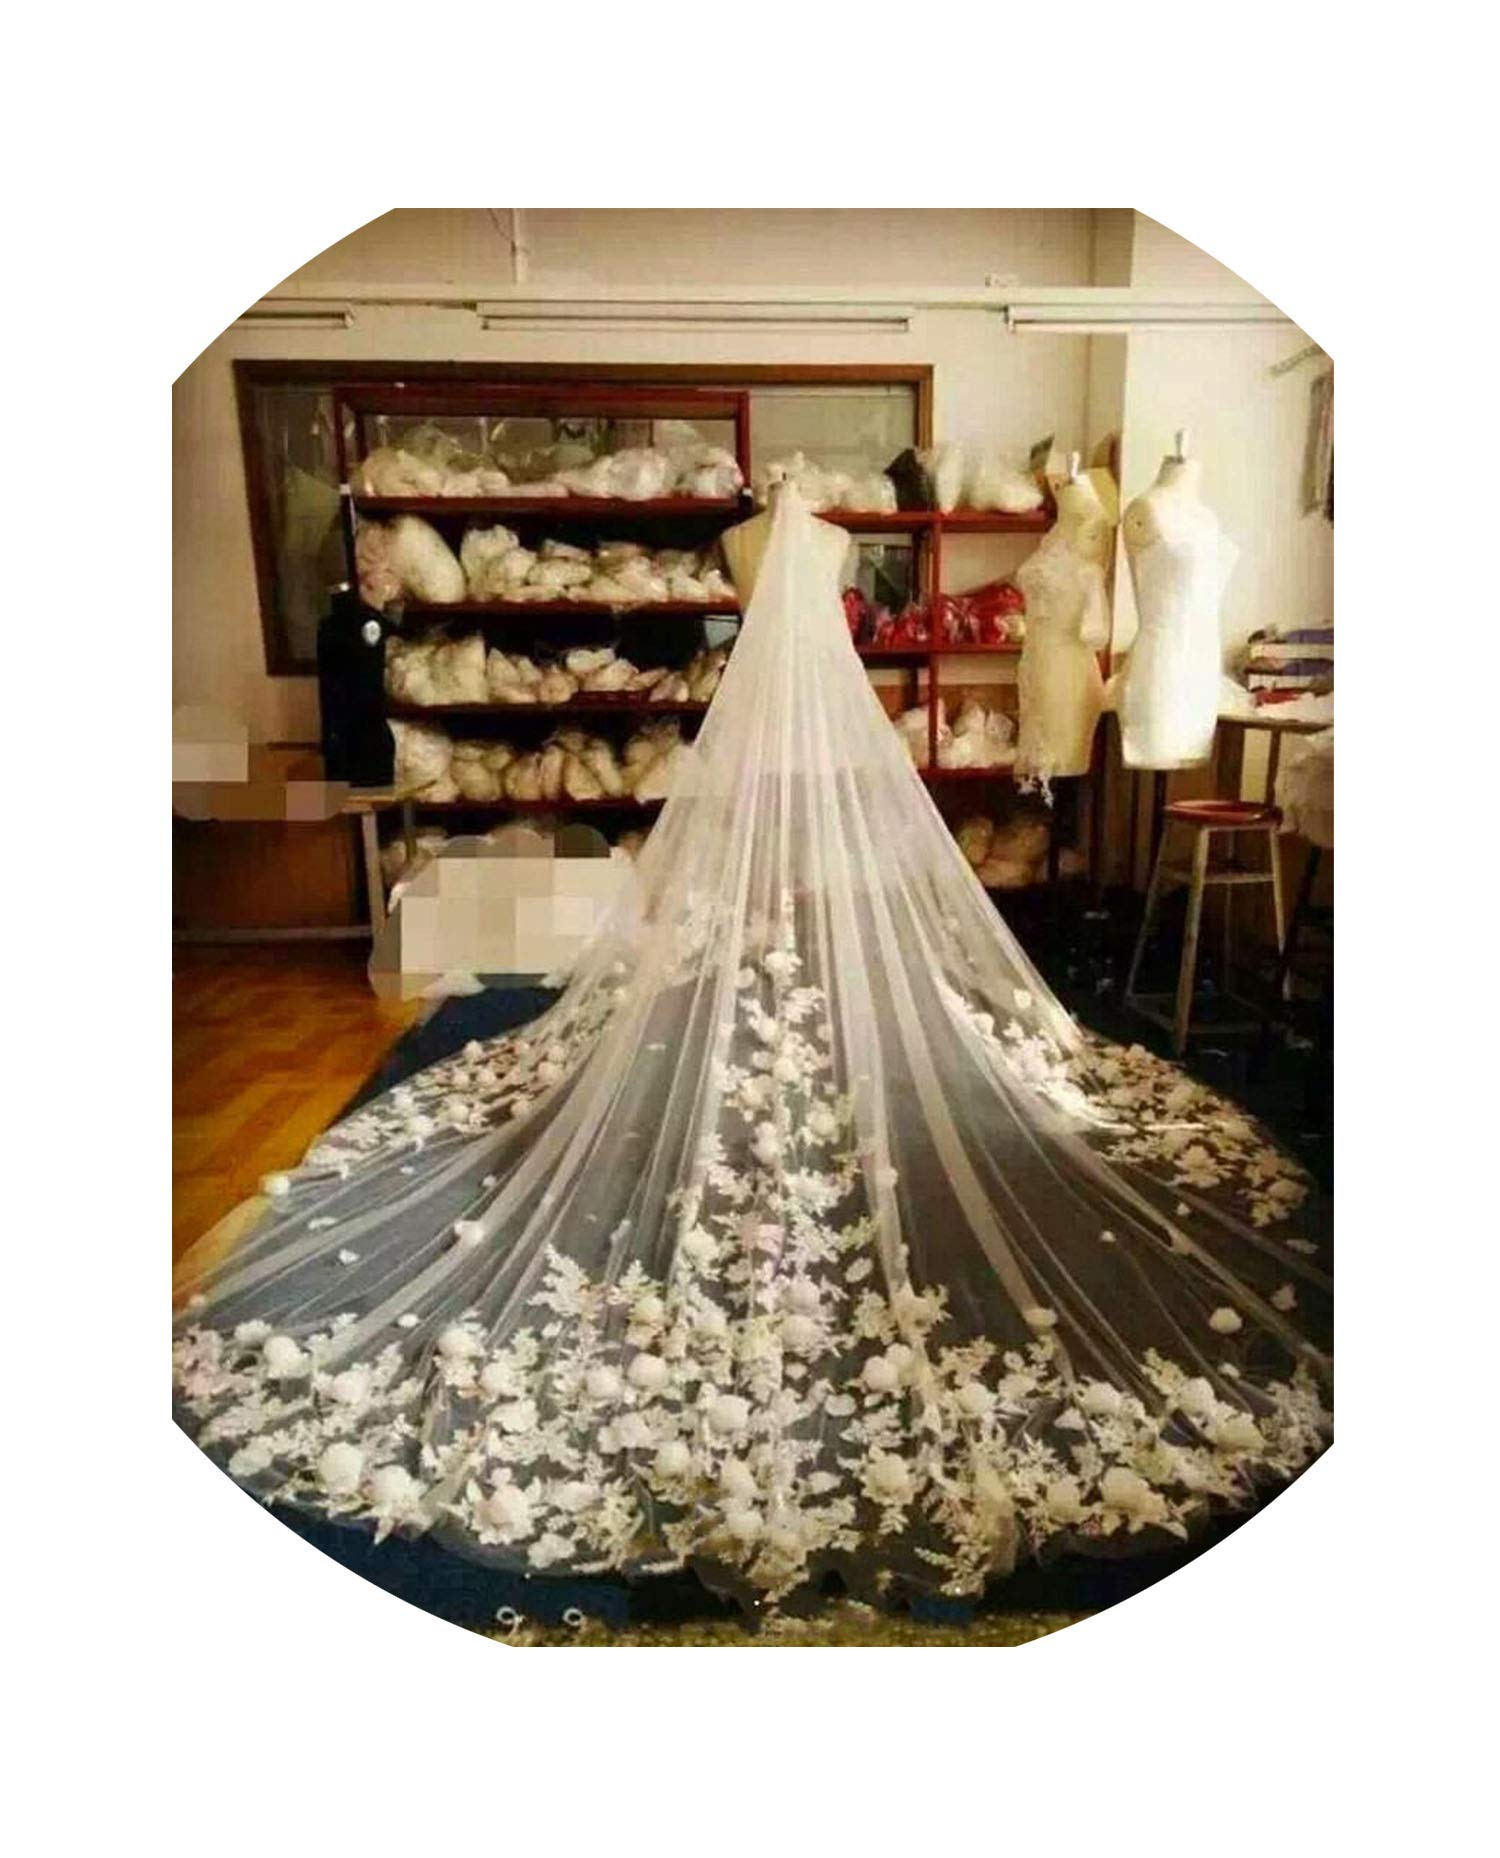 New Coming Cathedral Veil With 3D Floral Appliques One Layer Designed For Church Wedding Best Wedding Accessories With Comb,White,500Cm